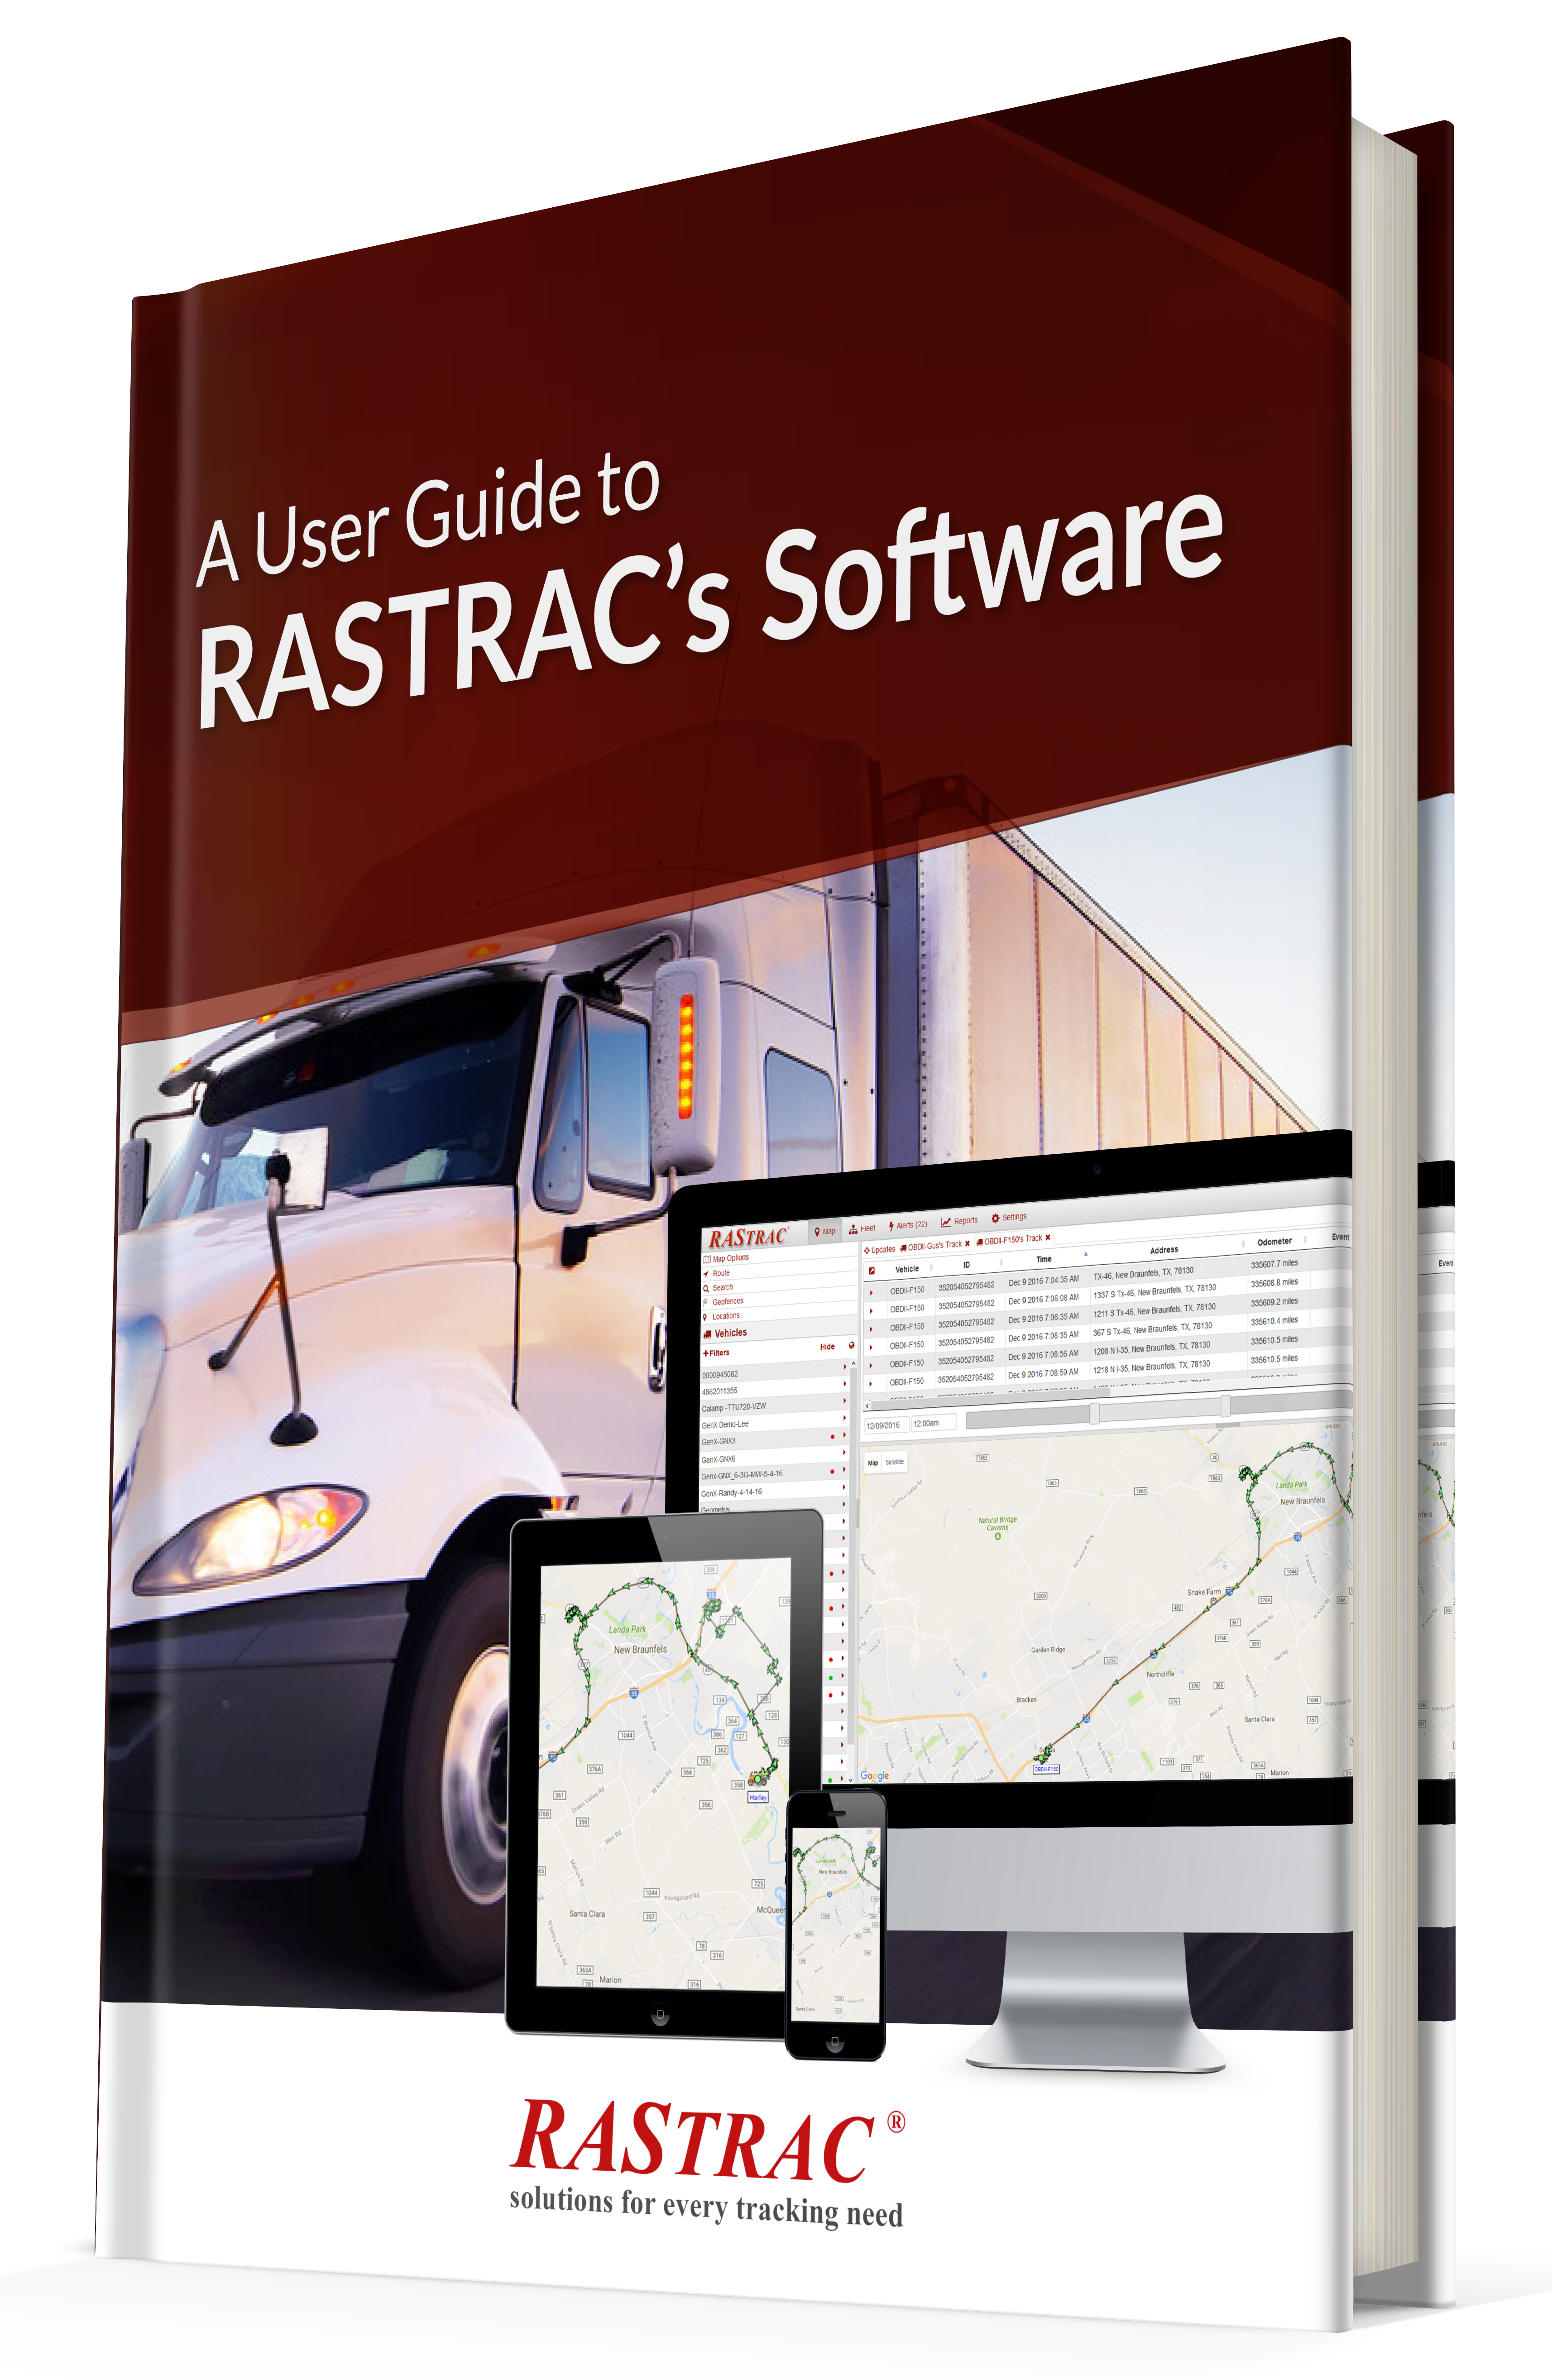 User Guide to RASTRAC Software